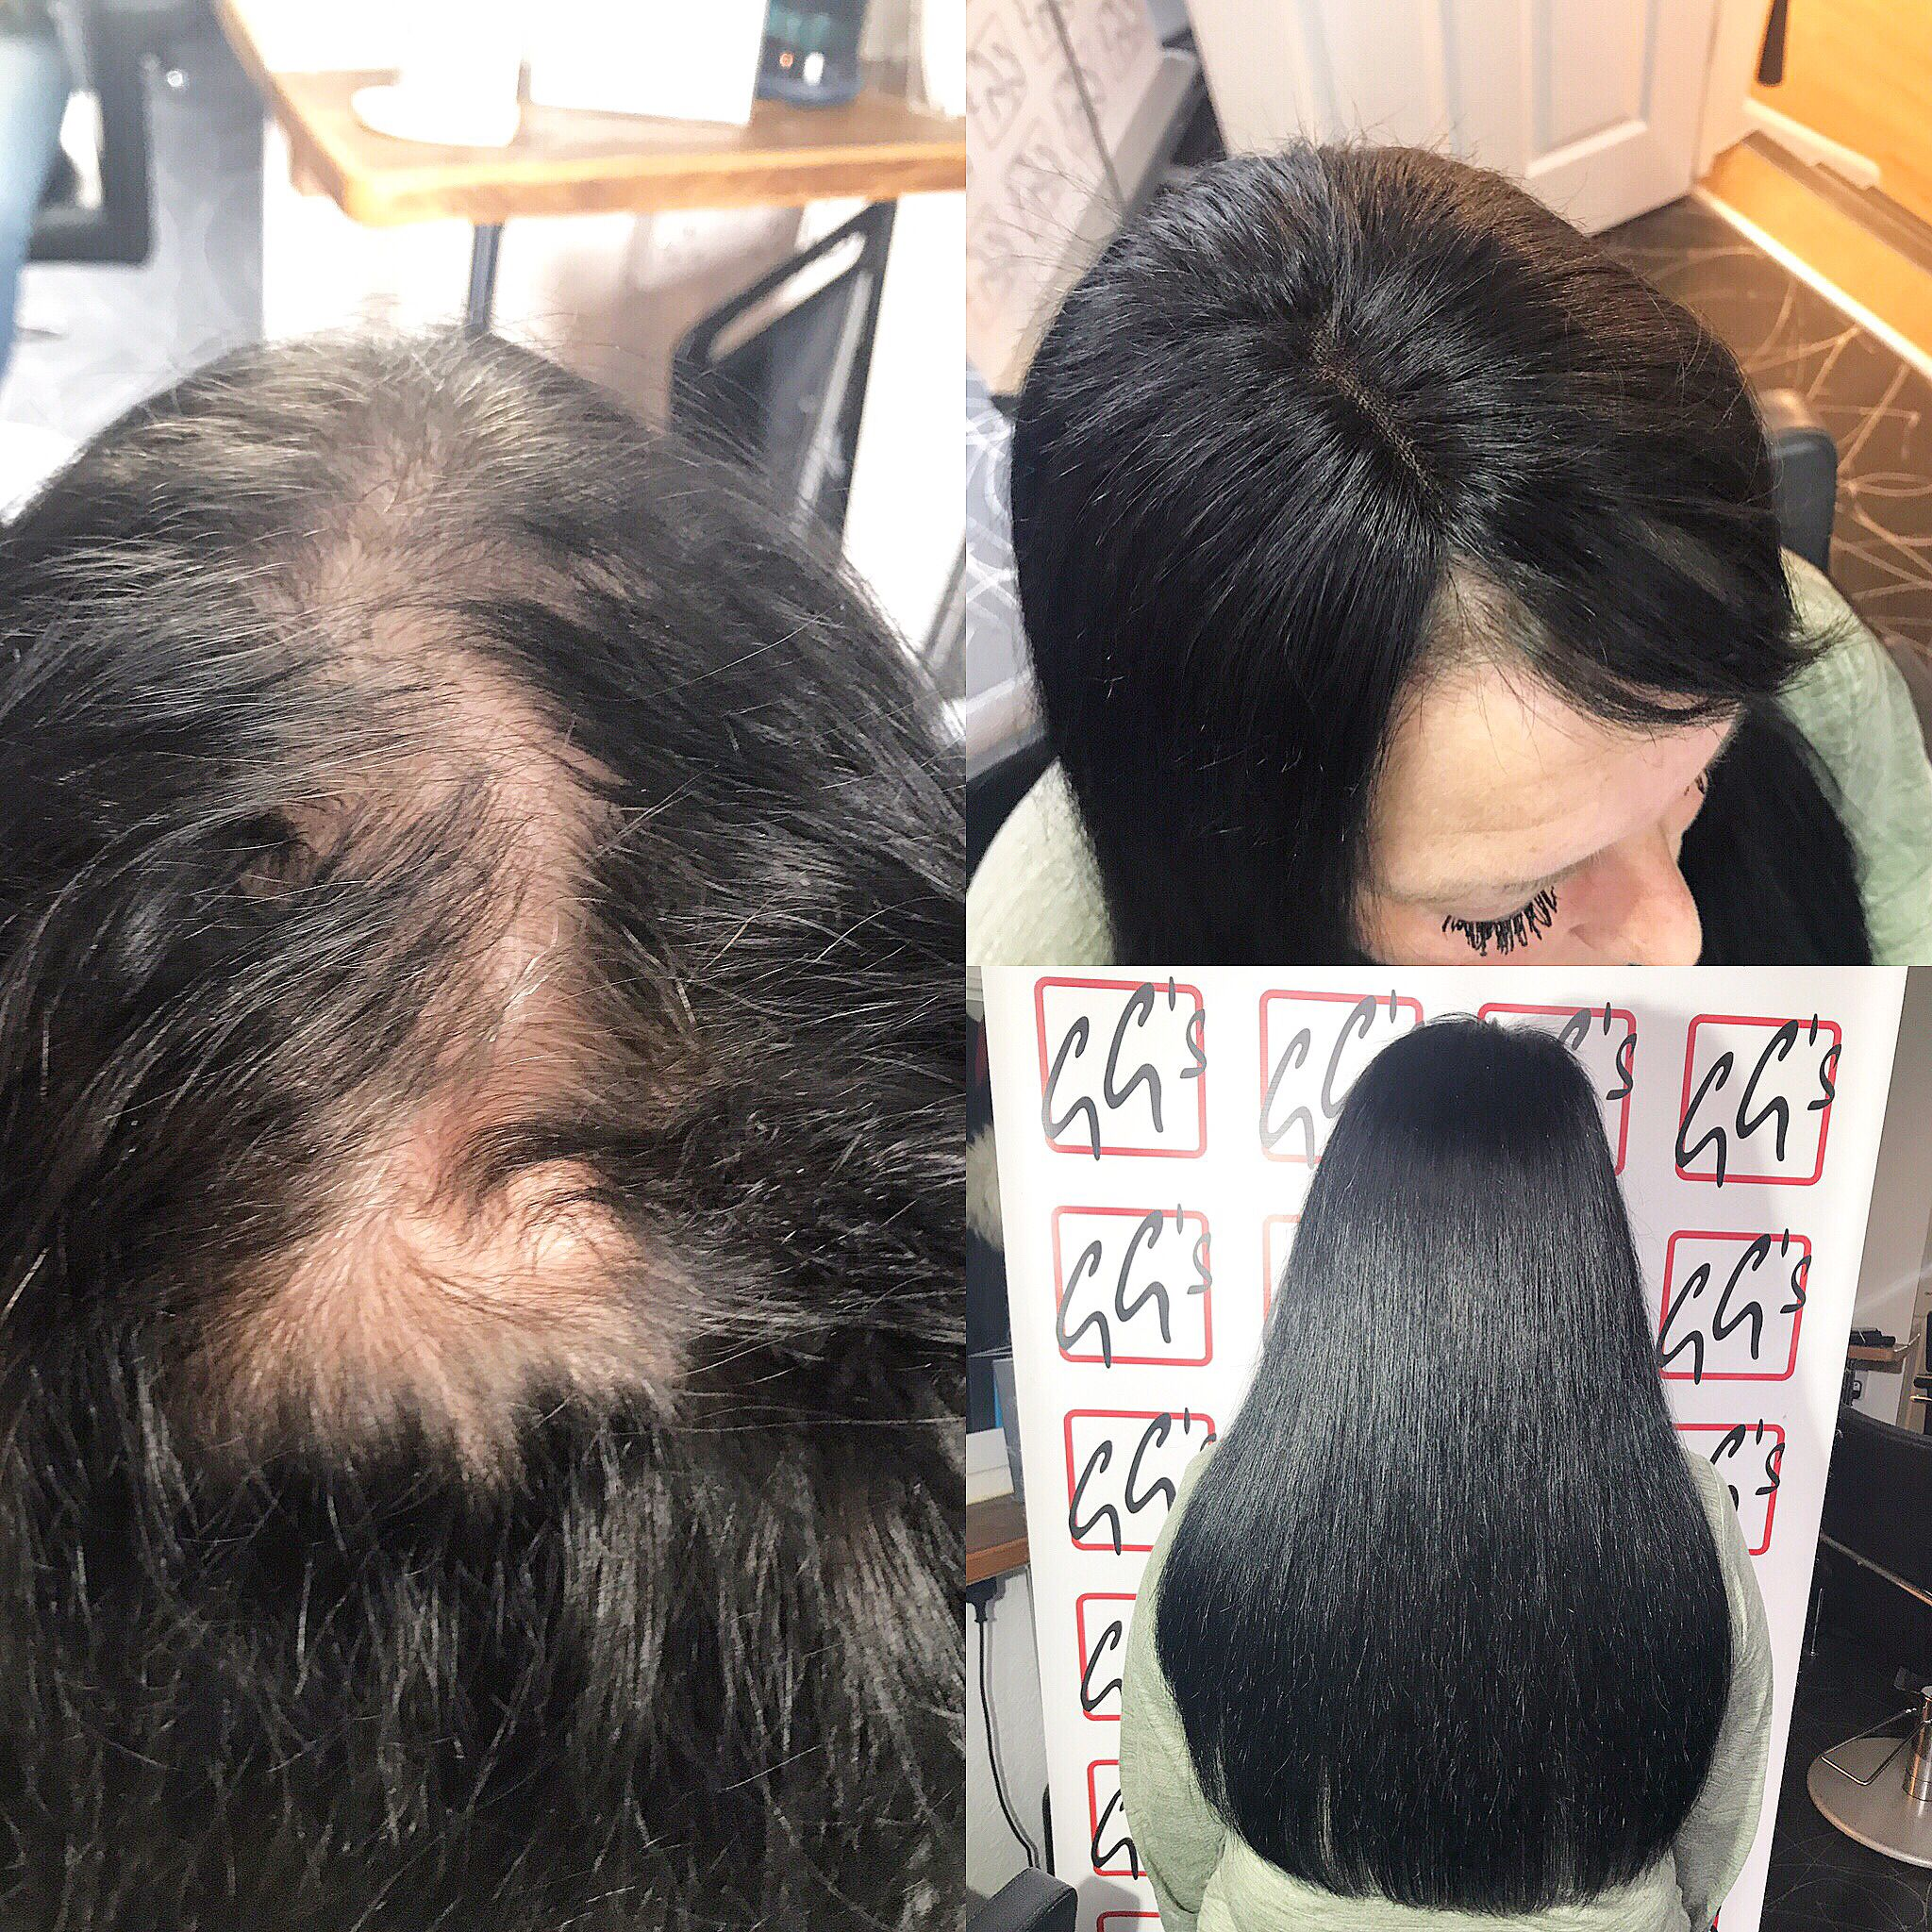 Our Client Suffered From Female Pattern Baldness On The Top Of Her